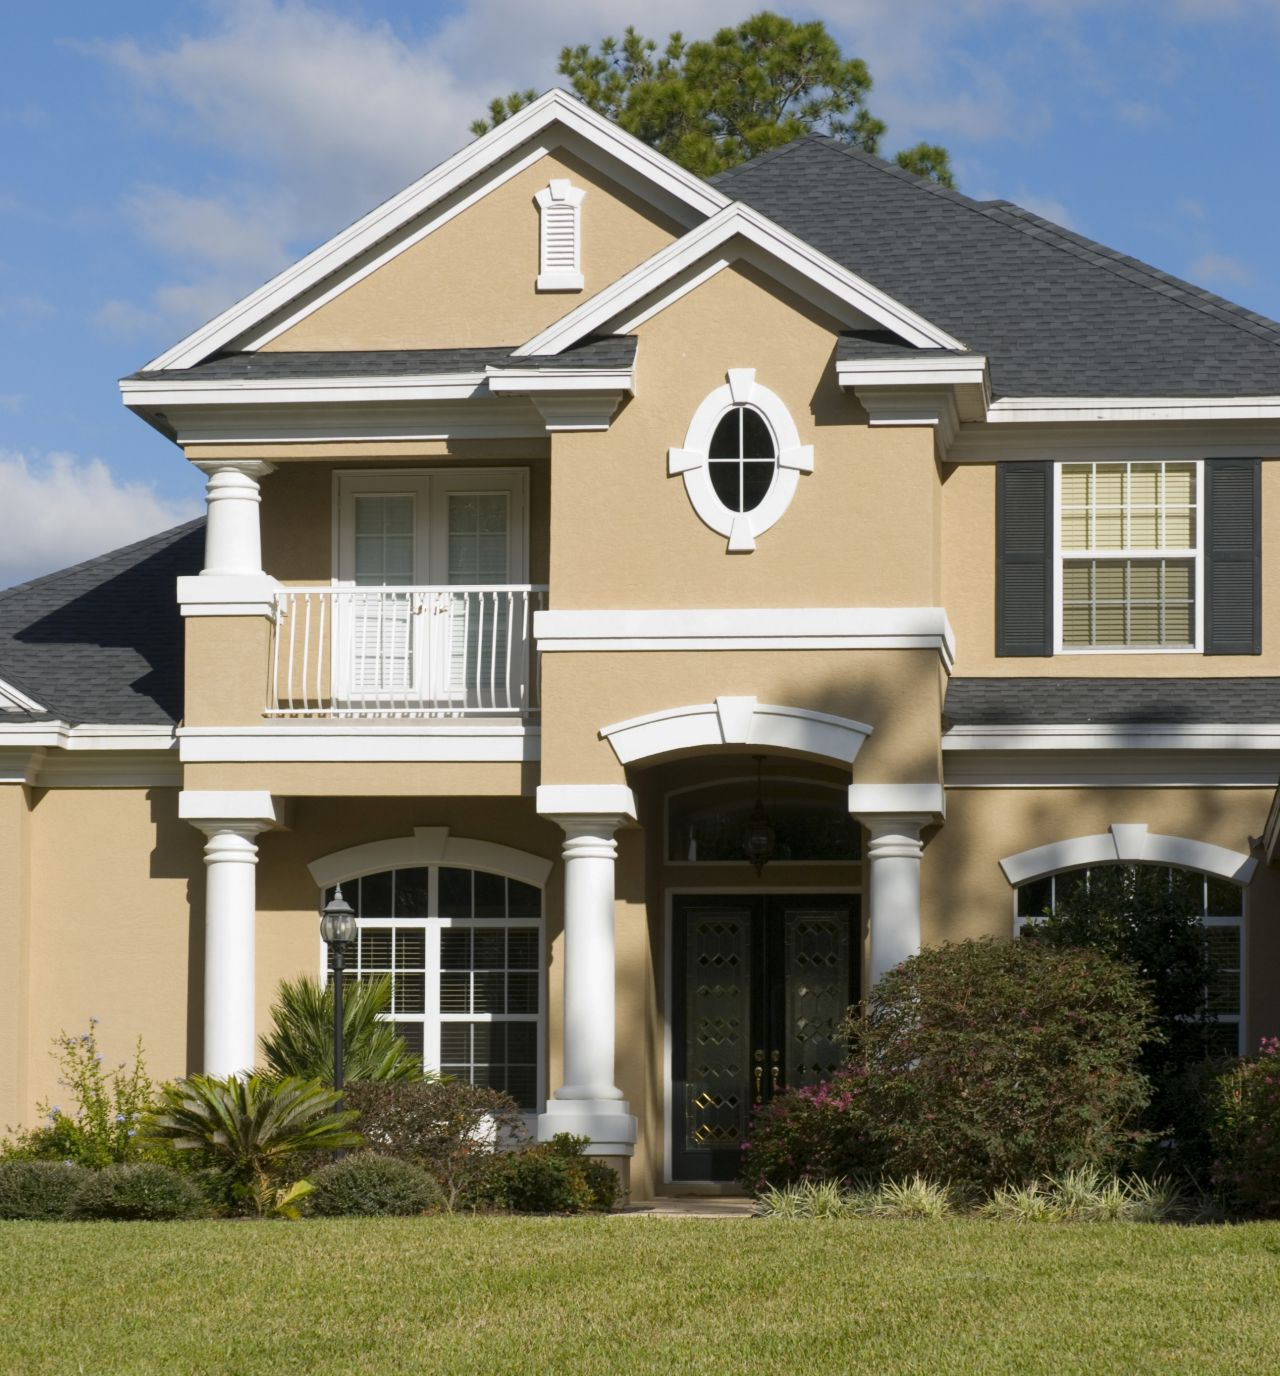 Exterior House Paint Color Ideas: Exterior Paint Schemes And Consider Your Surroundings